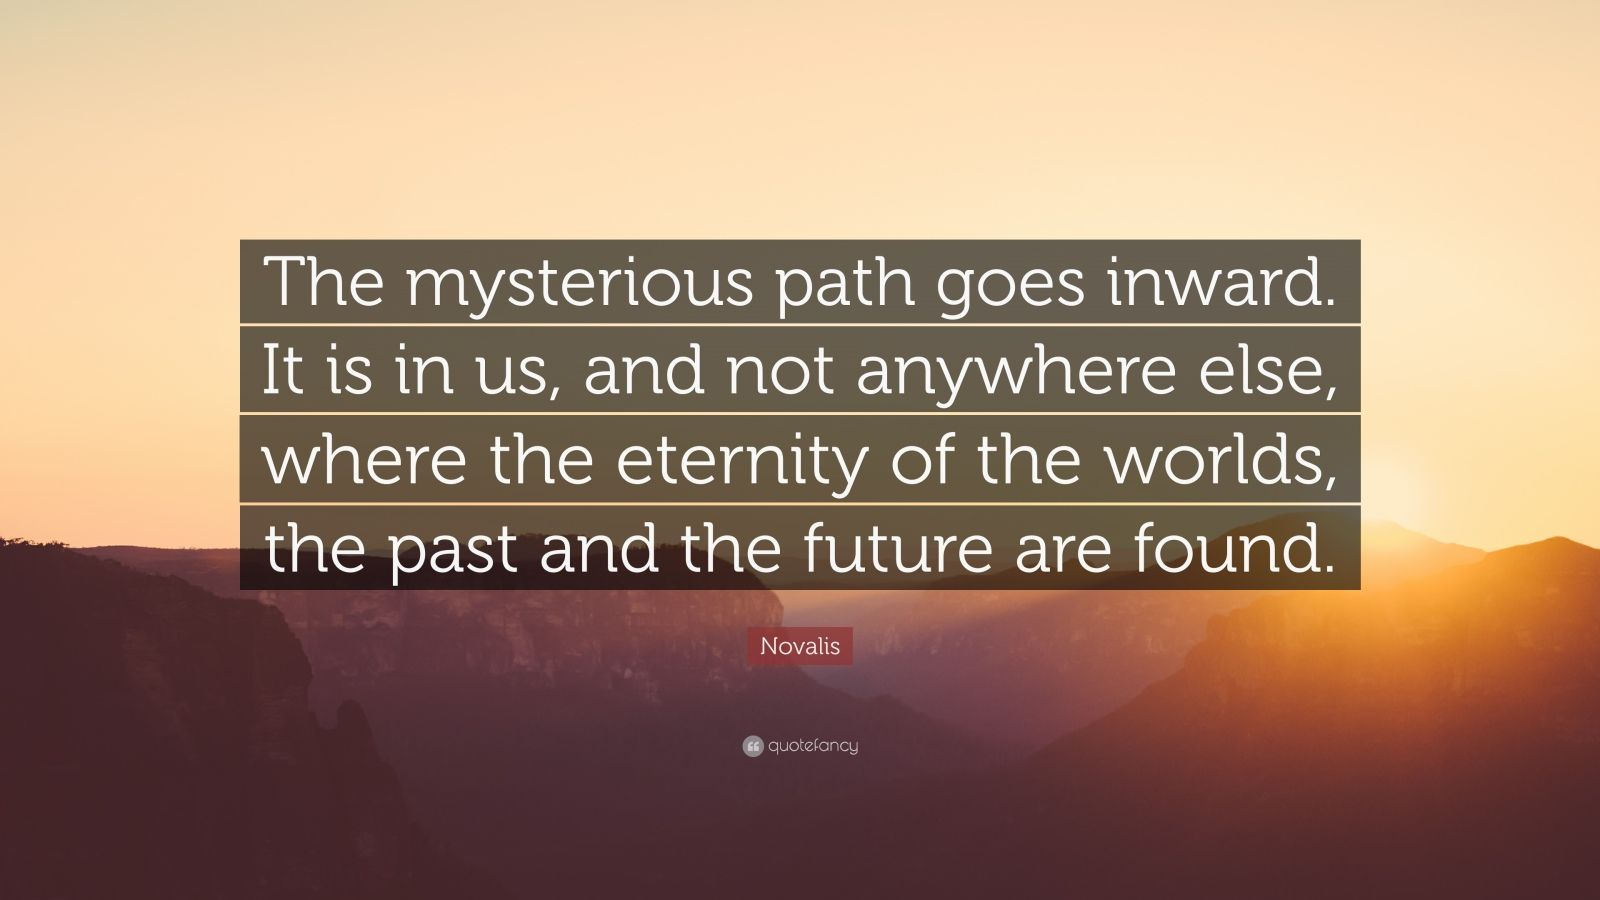 """Novalis Quote: """"The mysterious path goes inward. It is in us, and not anywhere else, where the eternity of the worlds, the past and the future are found."""""""